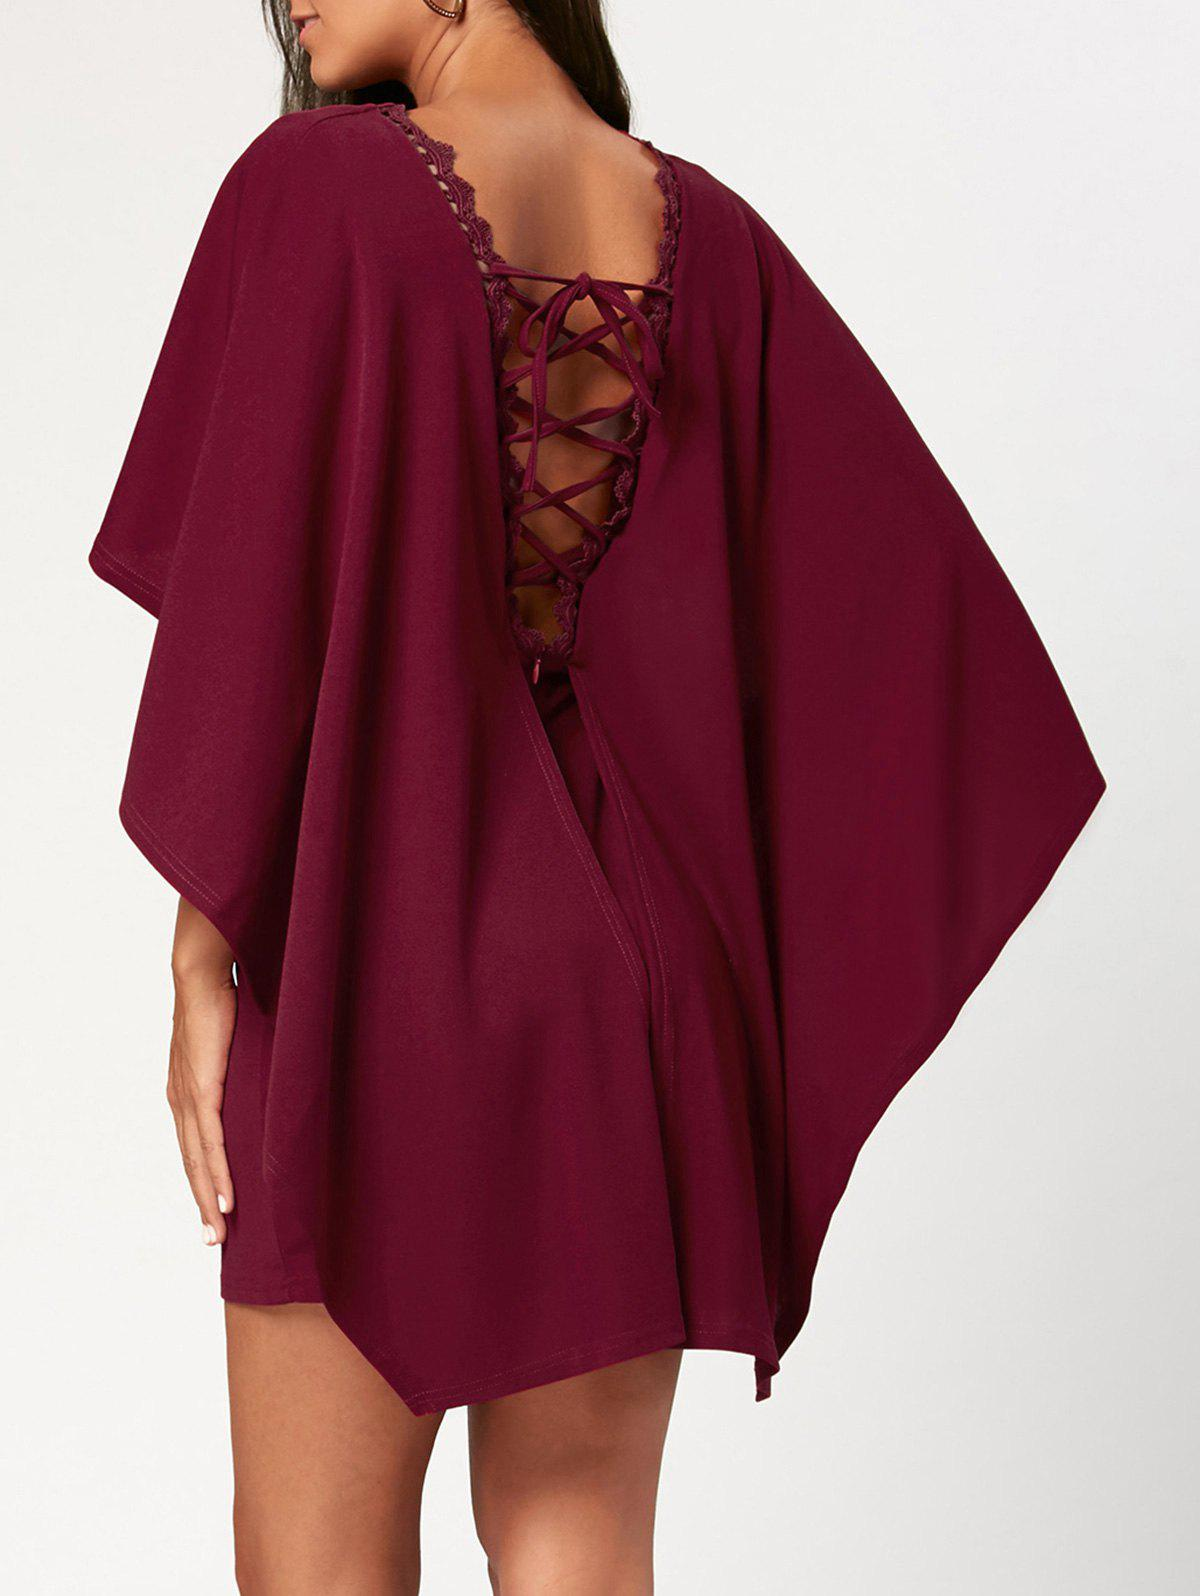 Criss Cross Cutout Backless Short Cape DressWOMEN<br><br>Size: XL; Color: WINE RED; Style: Brief; Material: Polyester; Silhouette: Sheath; Dress Type: Cape Dress; Dresses Length: Mini; Neckline: Round Collar; Sleeve Length: Half Sleeves; Waist: Natural; Embellishment: Criss-Cross; Pattern Type: Solid Color; Elasticity: Micro-elastic; With Belt: No; Season: Fall,Spring; Weight: 0.4600kg; Package Contents: 1 x Dress; Occasion: Casual ,Club,Night Out,Outdoor,Party,Semi Formal,Wedding;